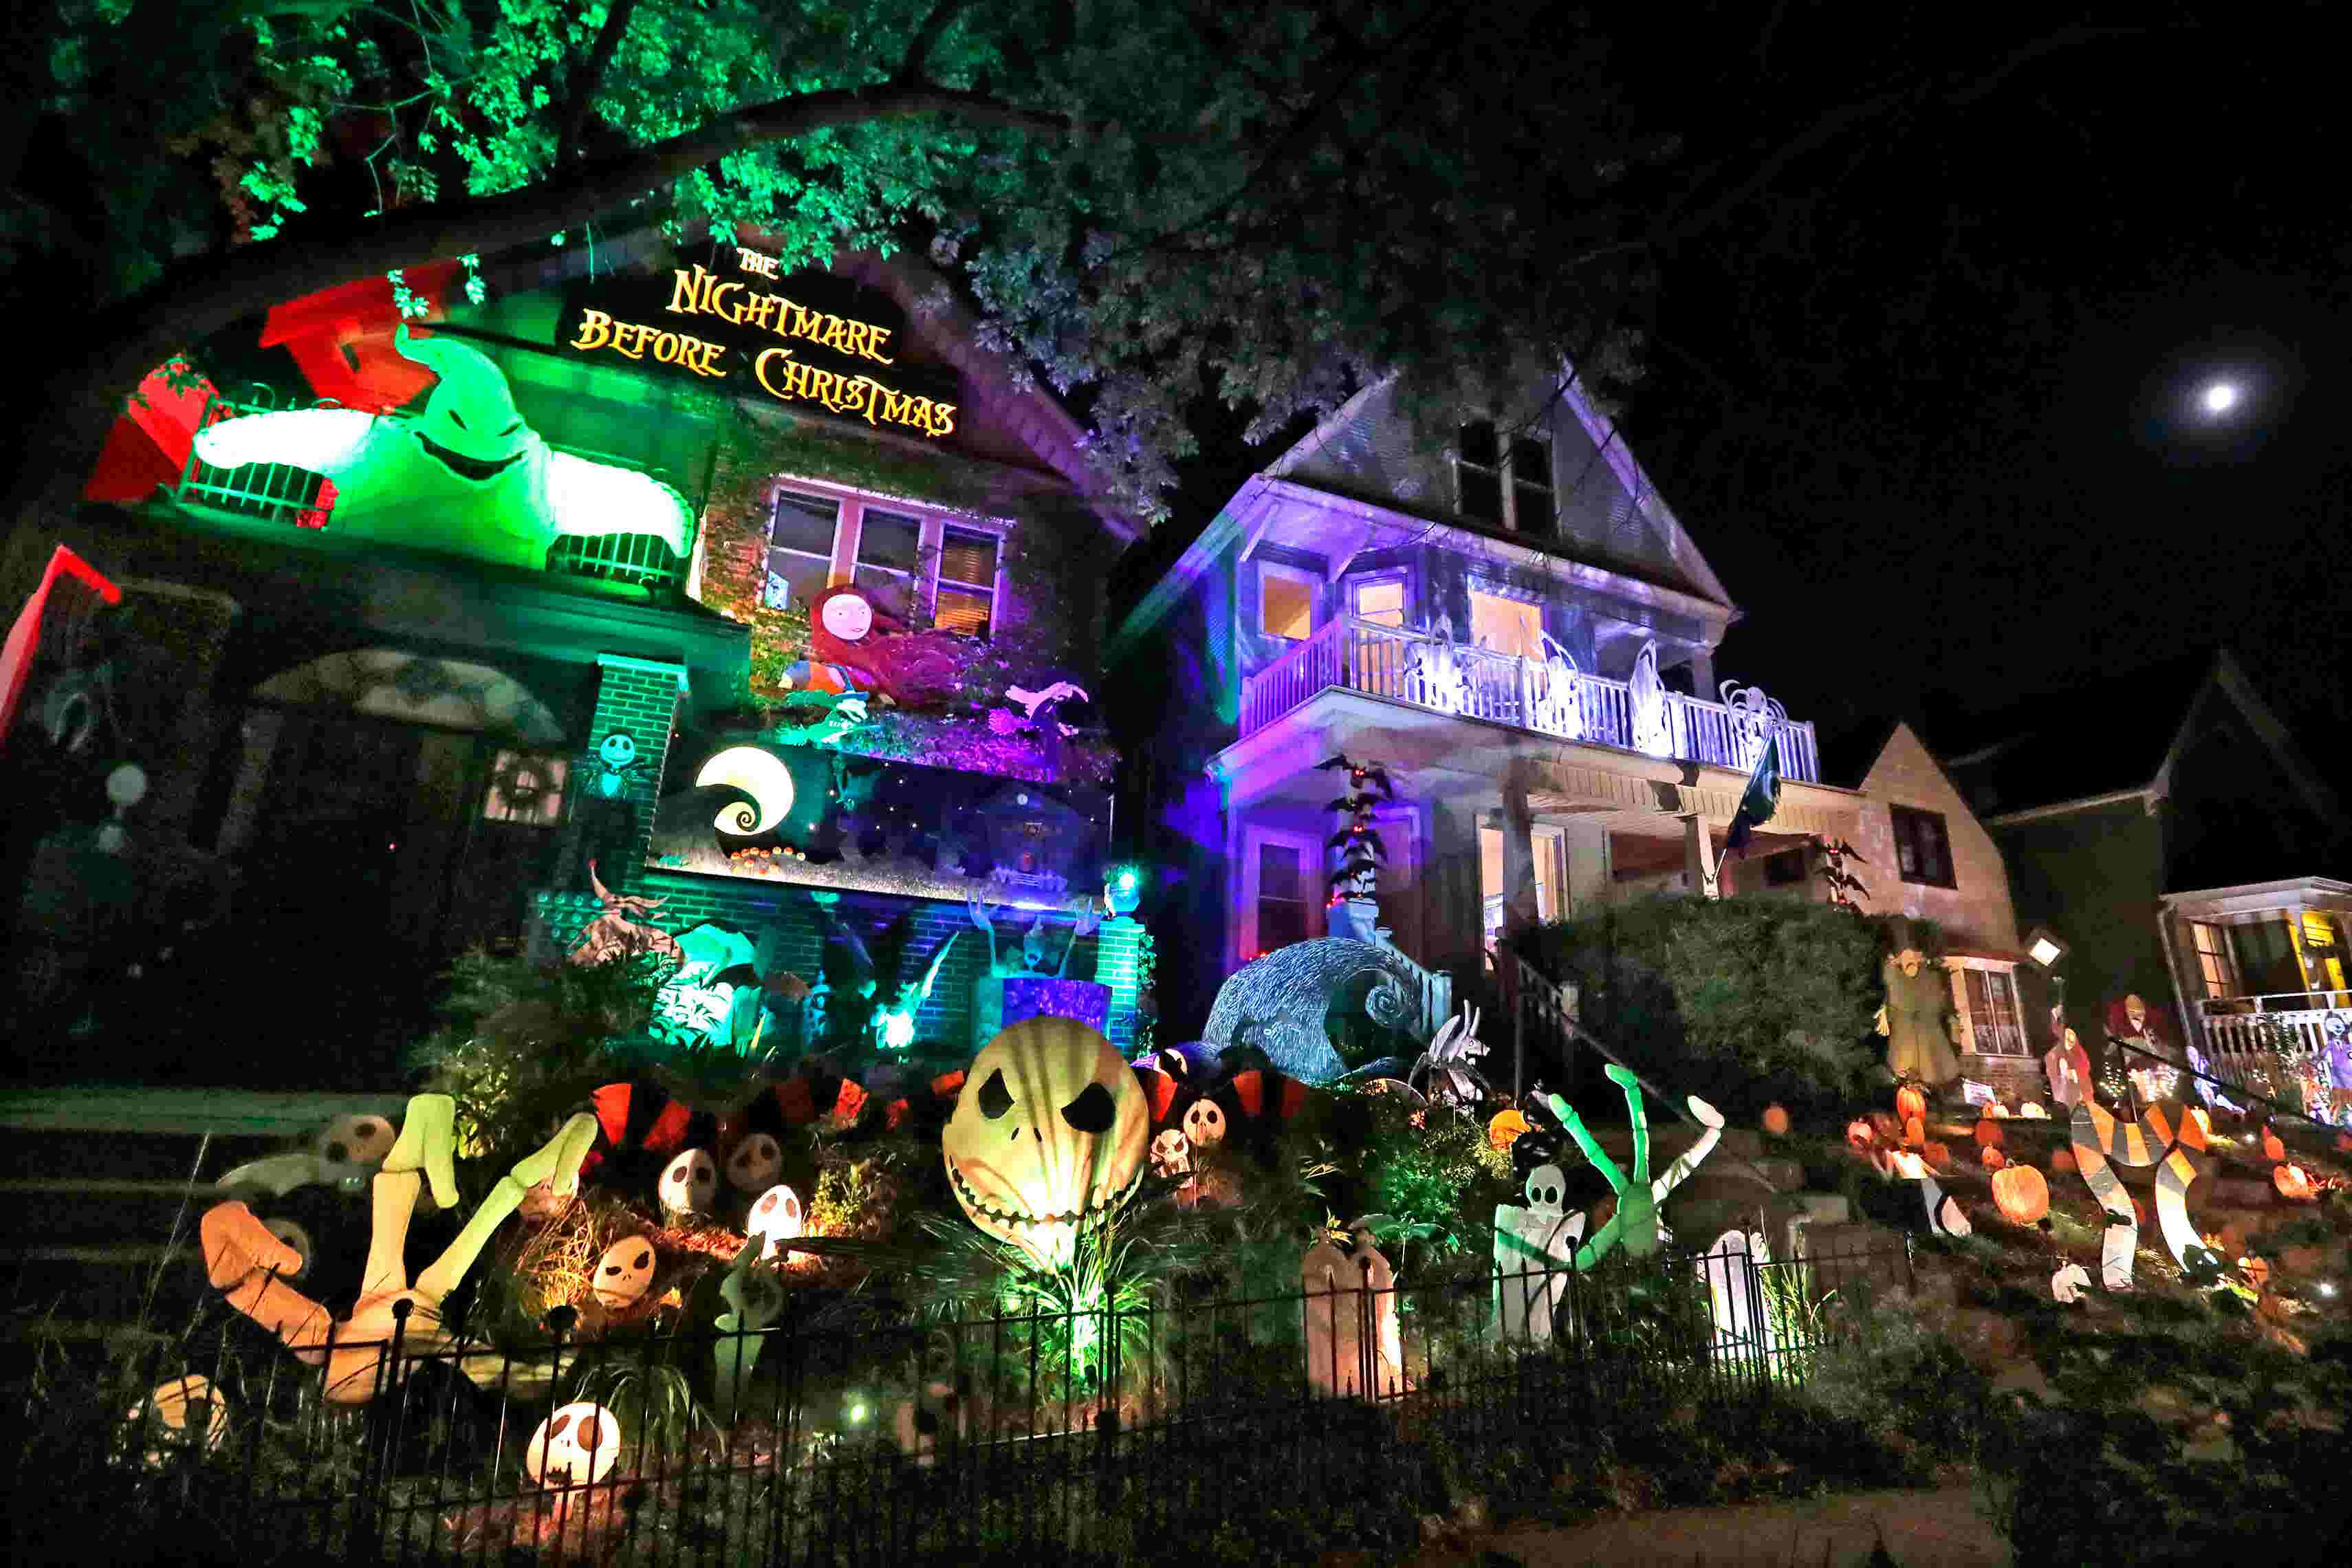 Nightmare Before Christmas Houses.Bay View Resident Decks Out His House With The Nightmare Before Christmas Theme